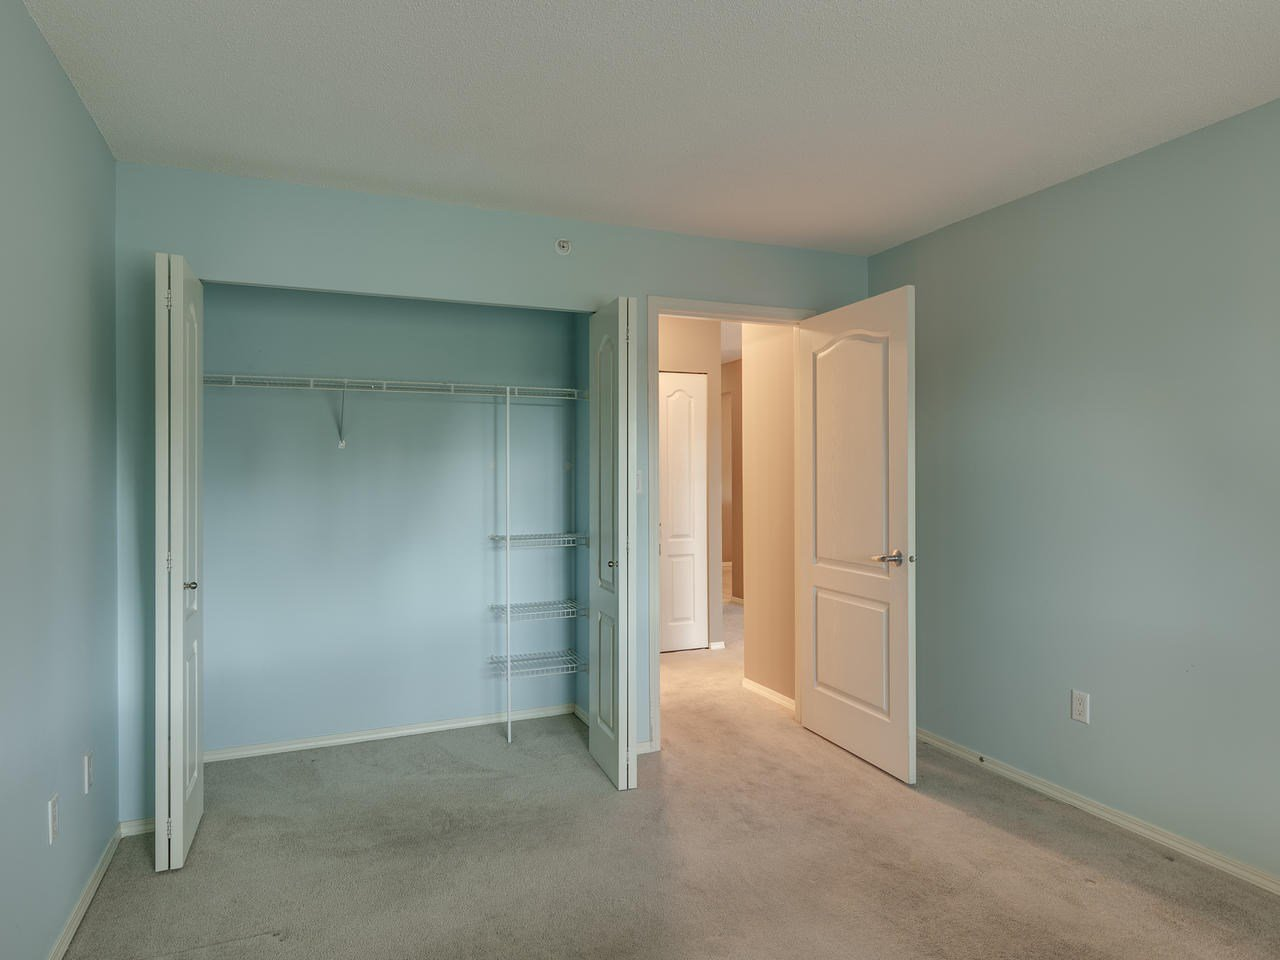 """Photo 22: Photos: 404 12148 224 Street in Maple Ridge: East Central Condo for sale in """"Panorama"""" : MLS®# R2461995"""